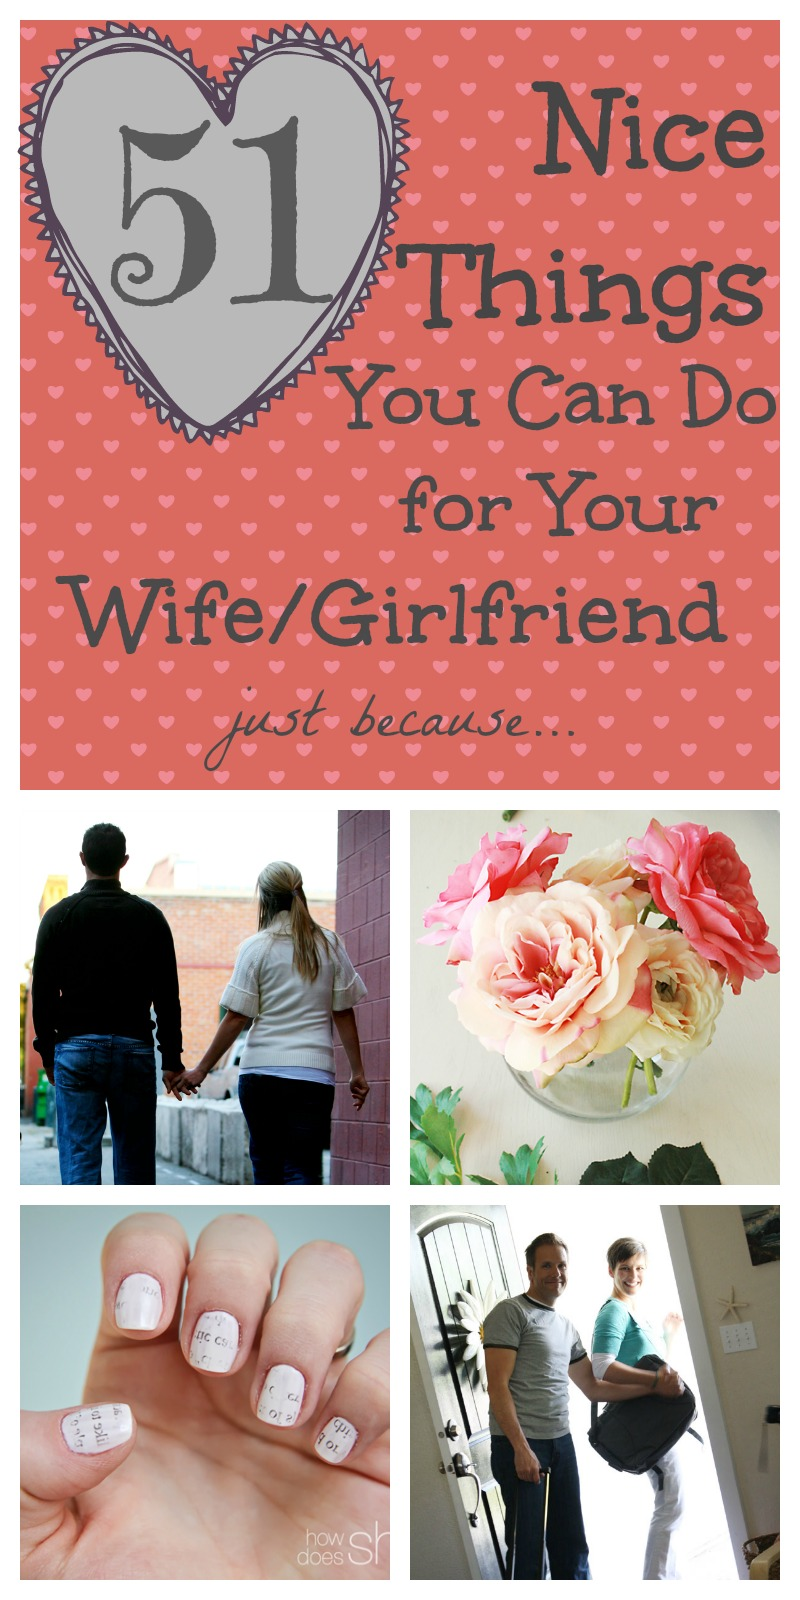 Nice Things to do for your Wife/Girlfriend